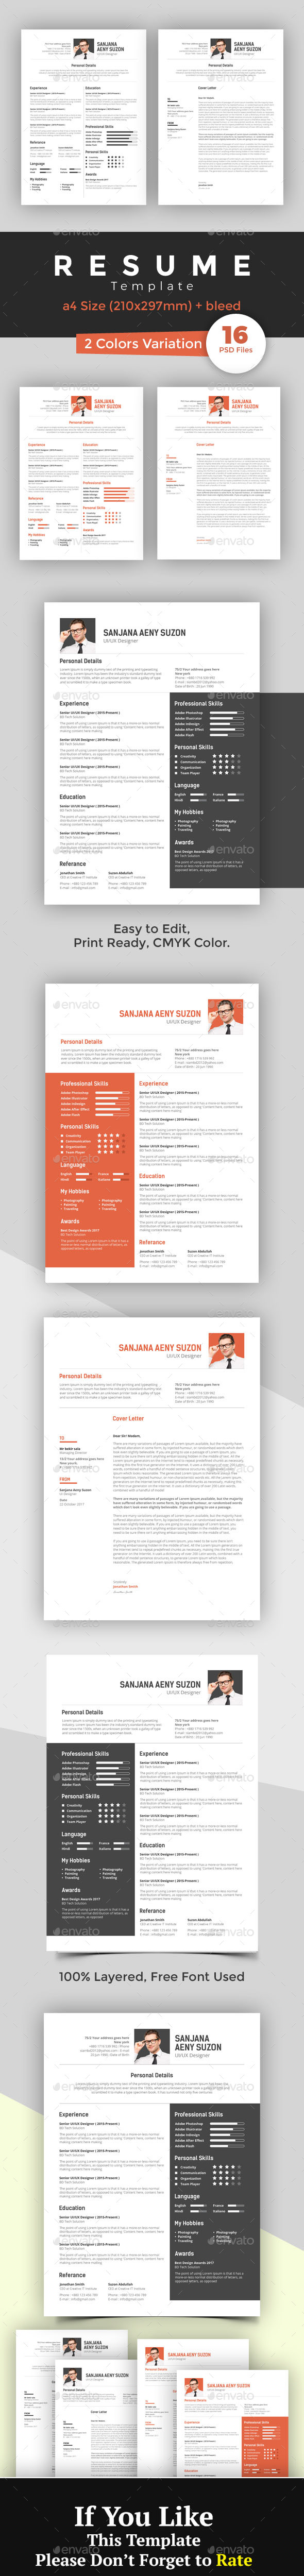 CV/Resume Template - Resumes Stationery